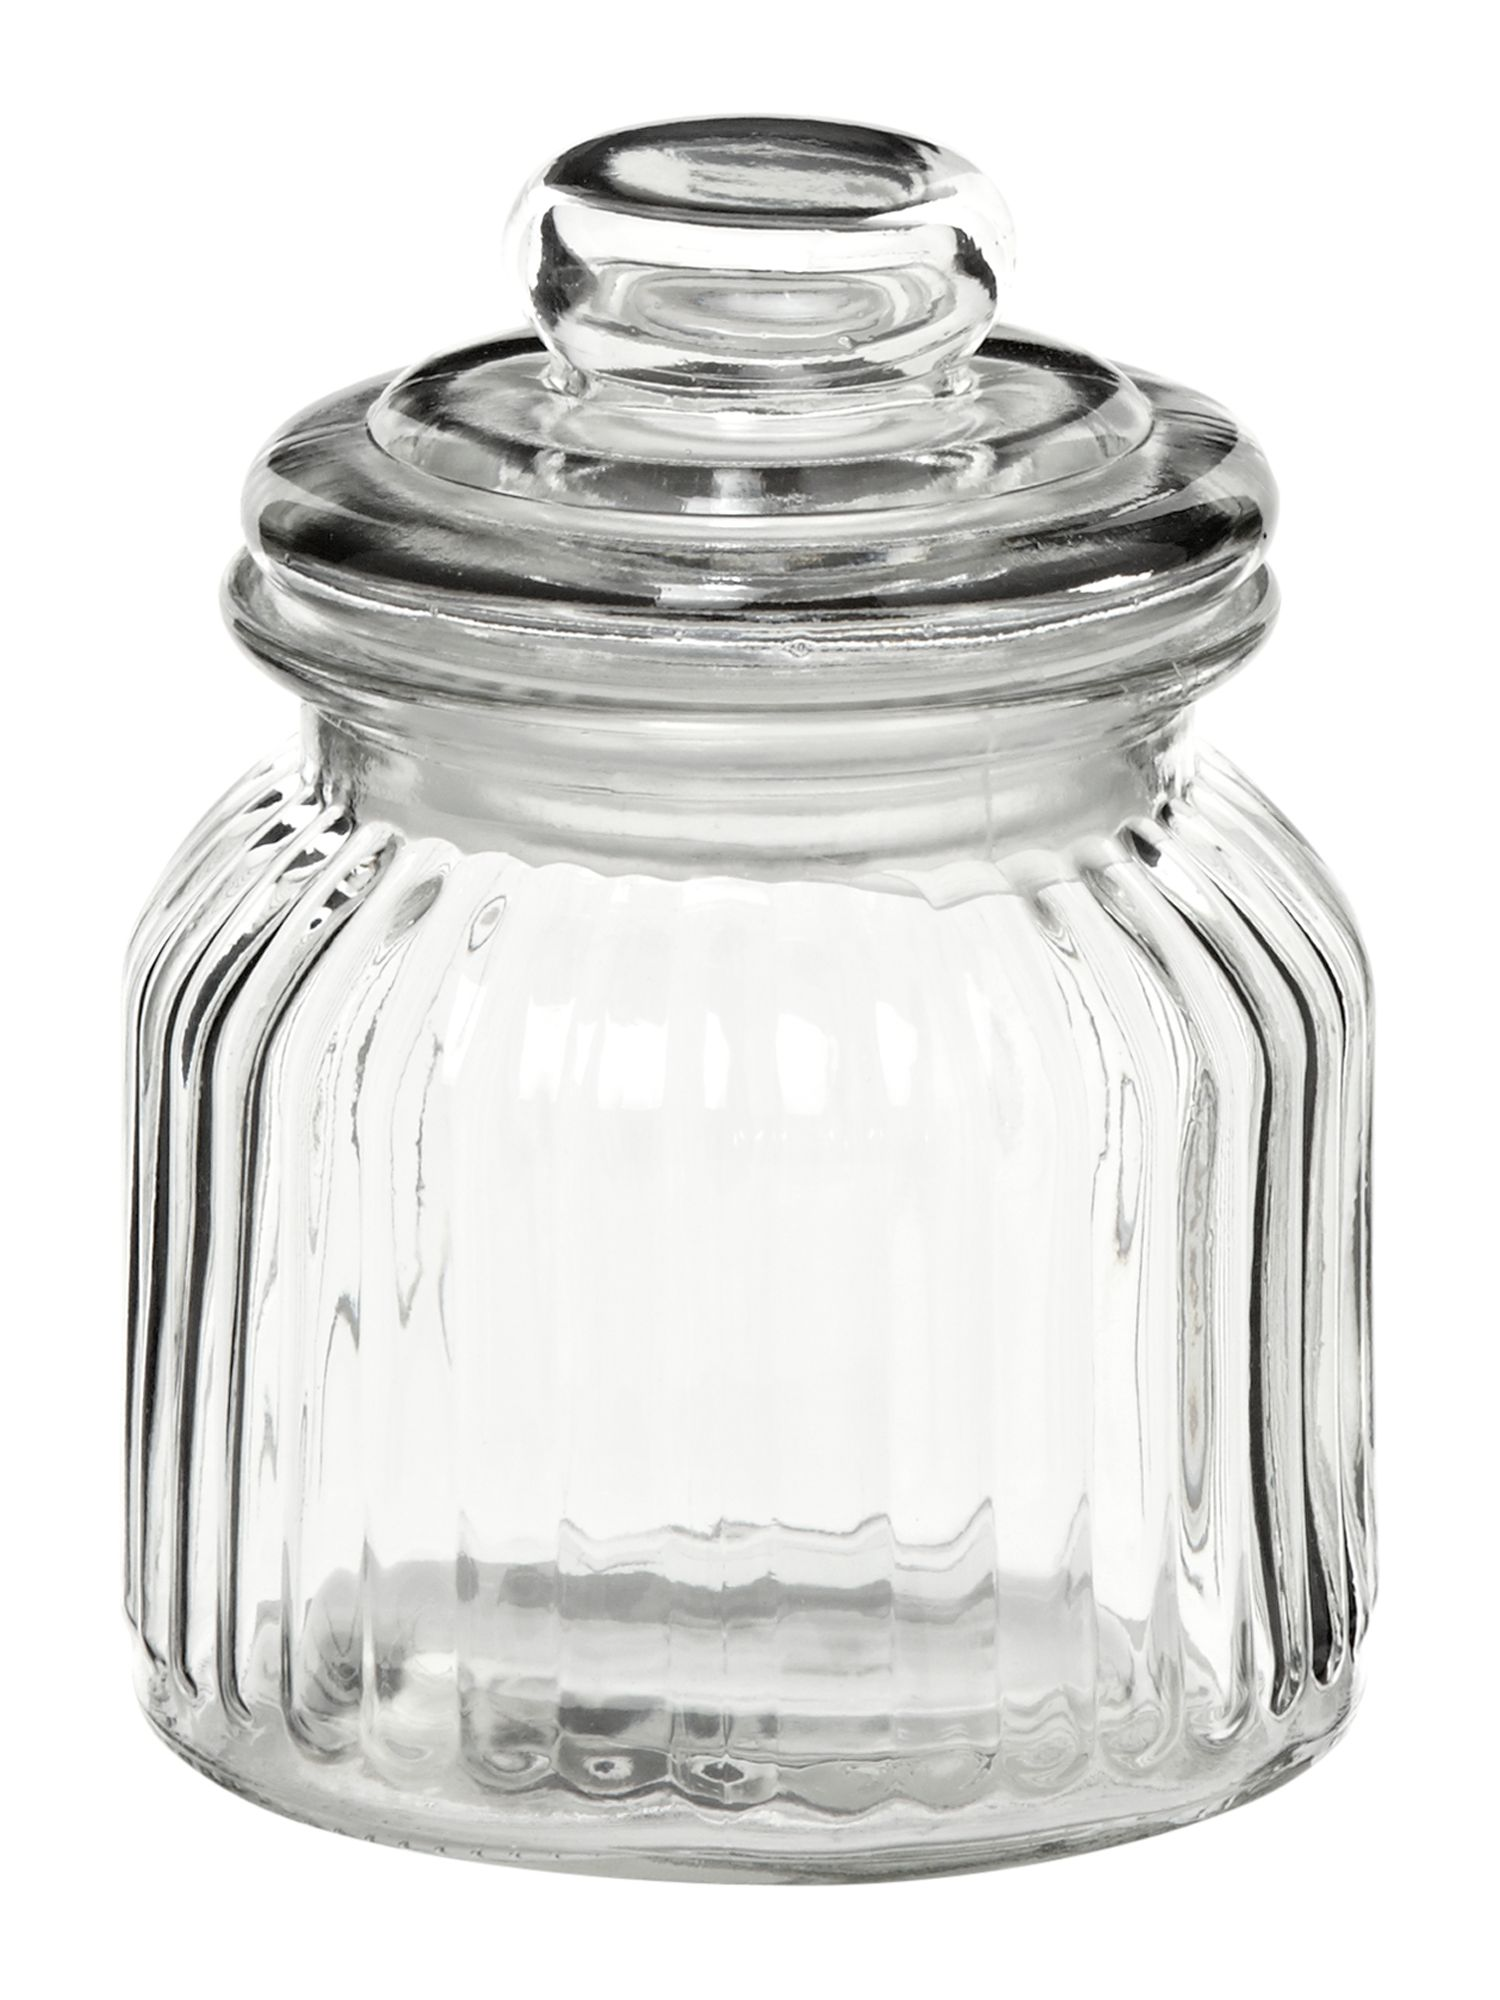 Glass sweetie jar, small